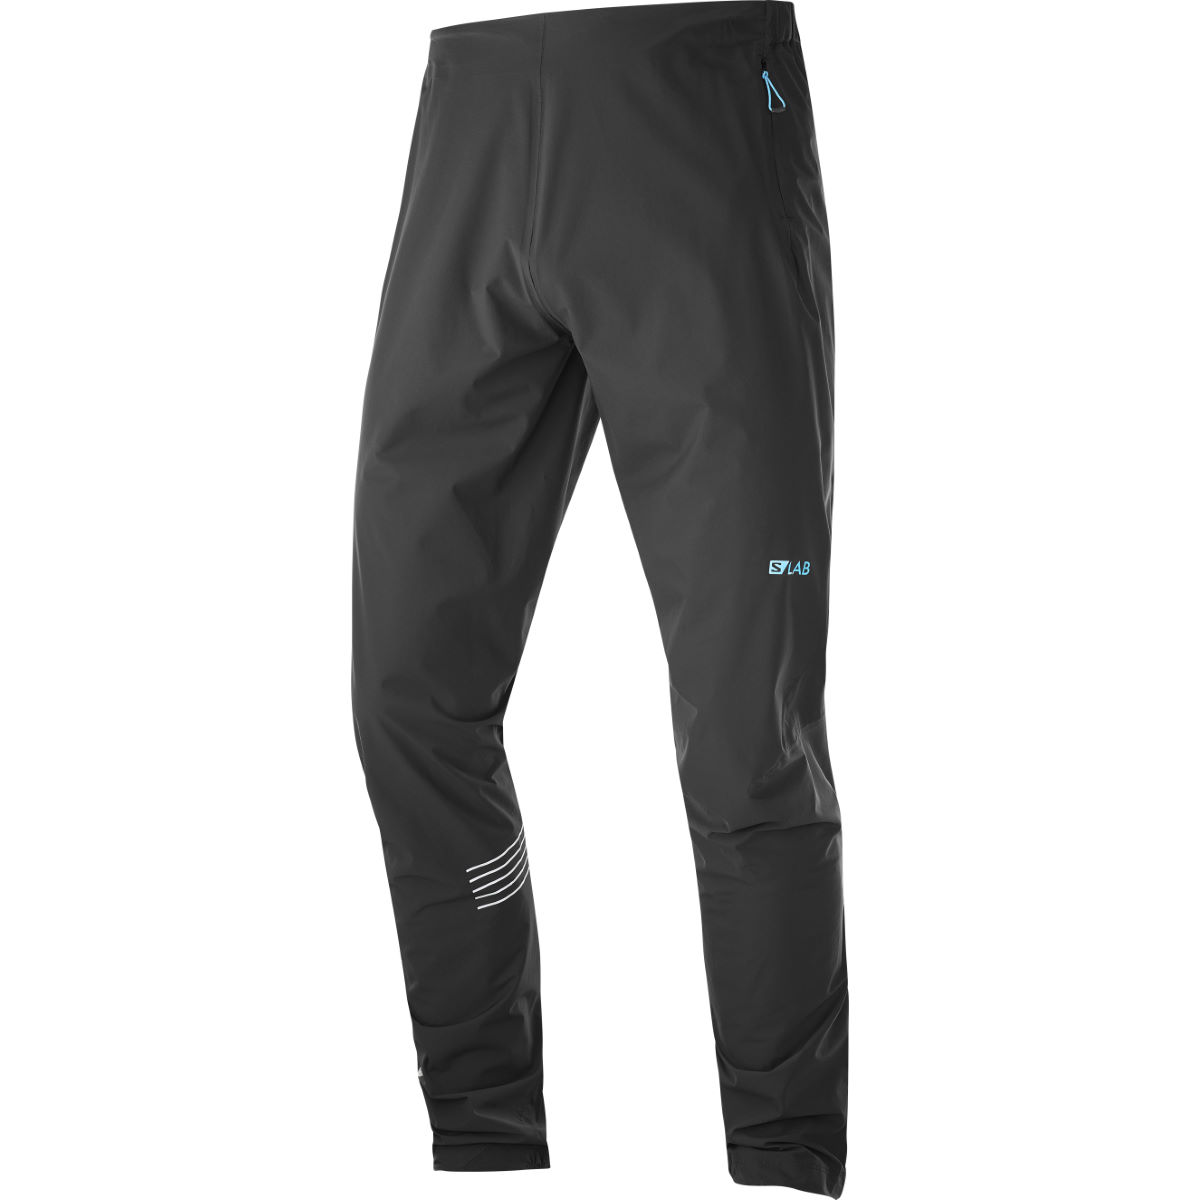 Salomon S-Lab Motion Fit 360 Pant - Pantalones